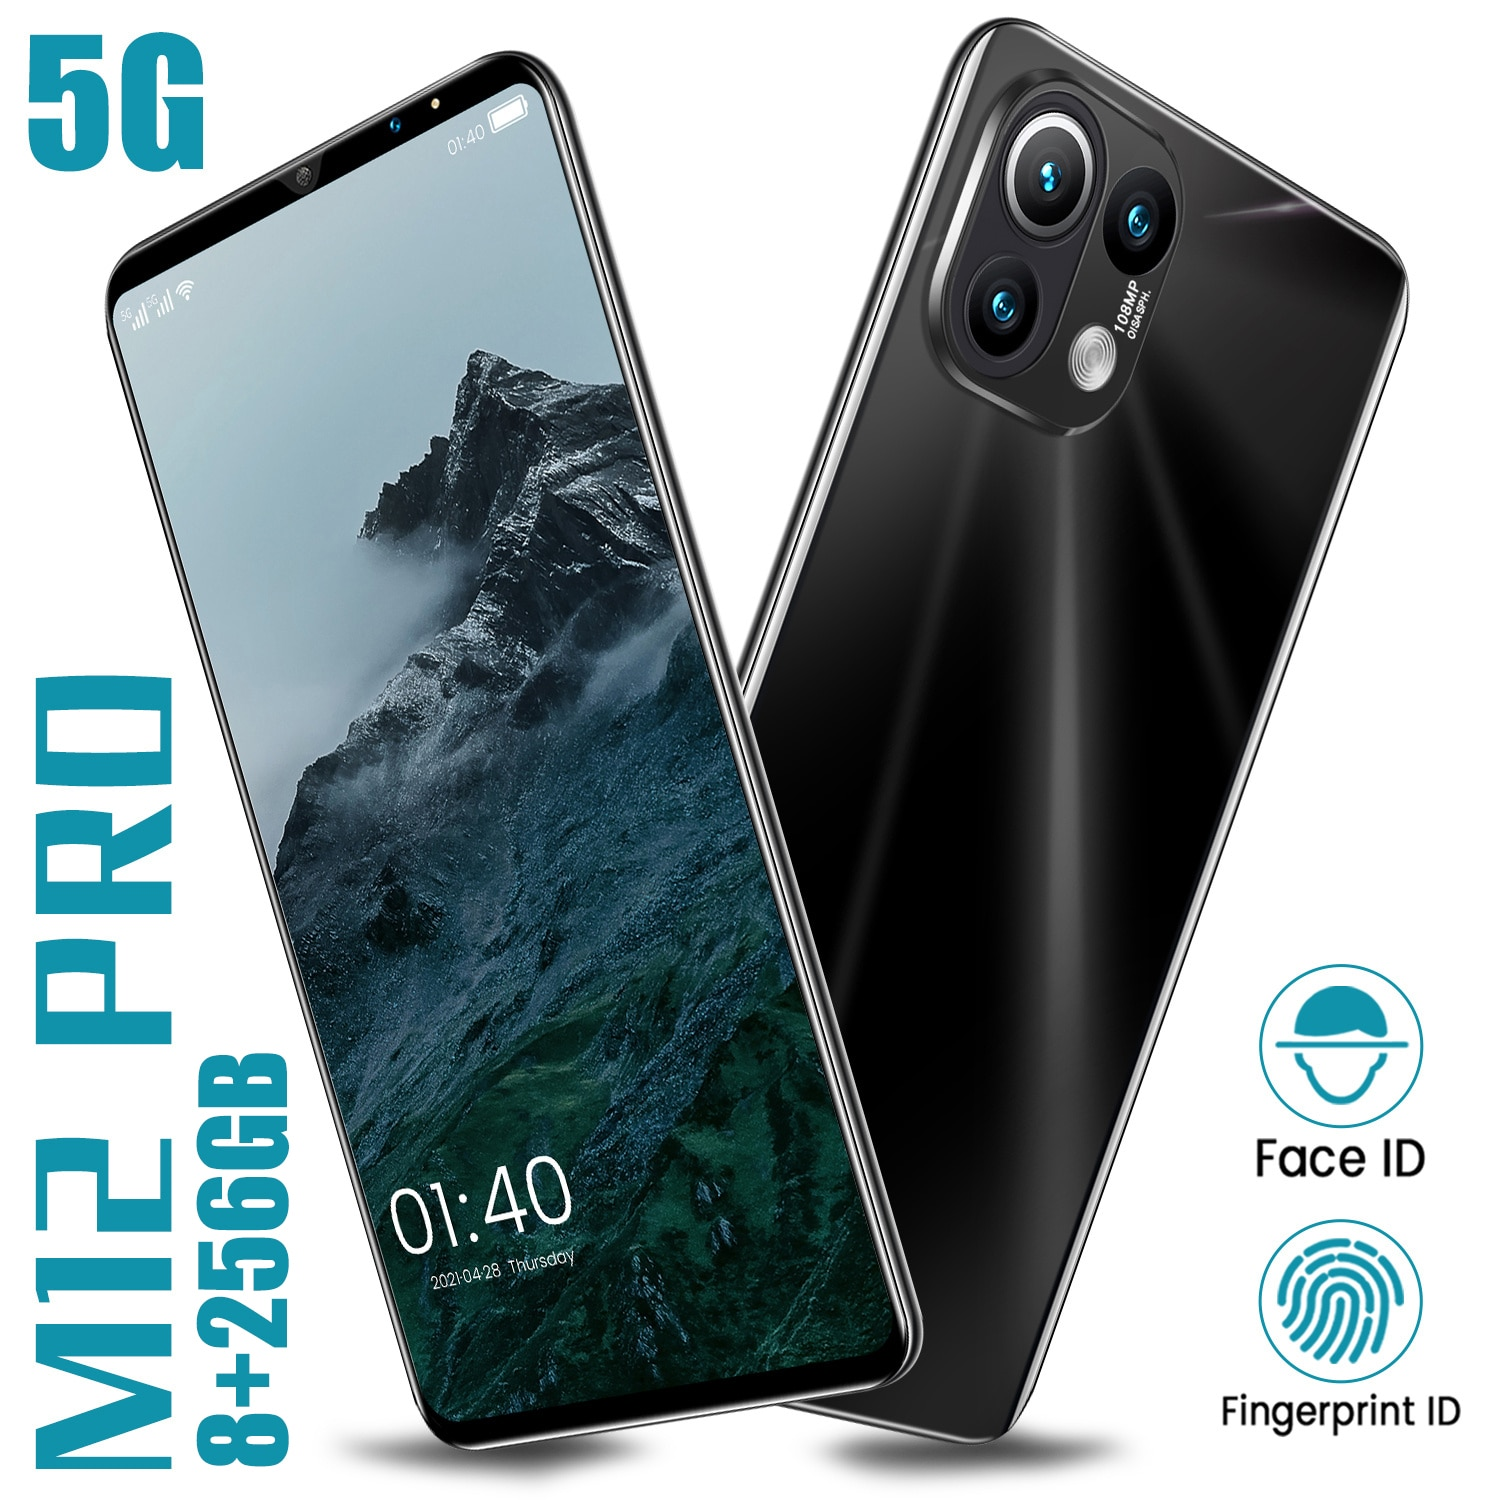 XIAOM12 Pro 1440*3200 8+256GB 6.1Inch Full Screen Android11 MTK6889 Deca Core 32+64MP Dual SIM Card 6000mAh Long Standby Face ID enlarge